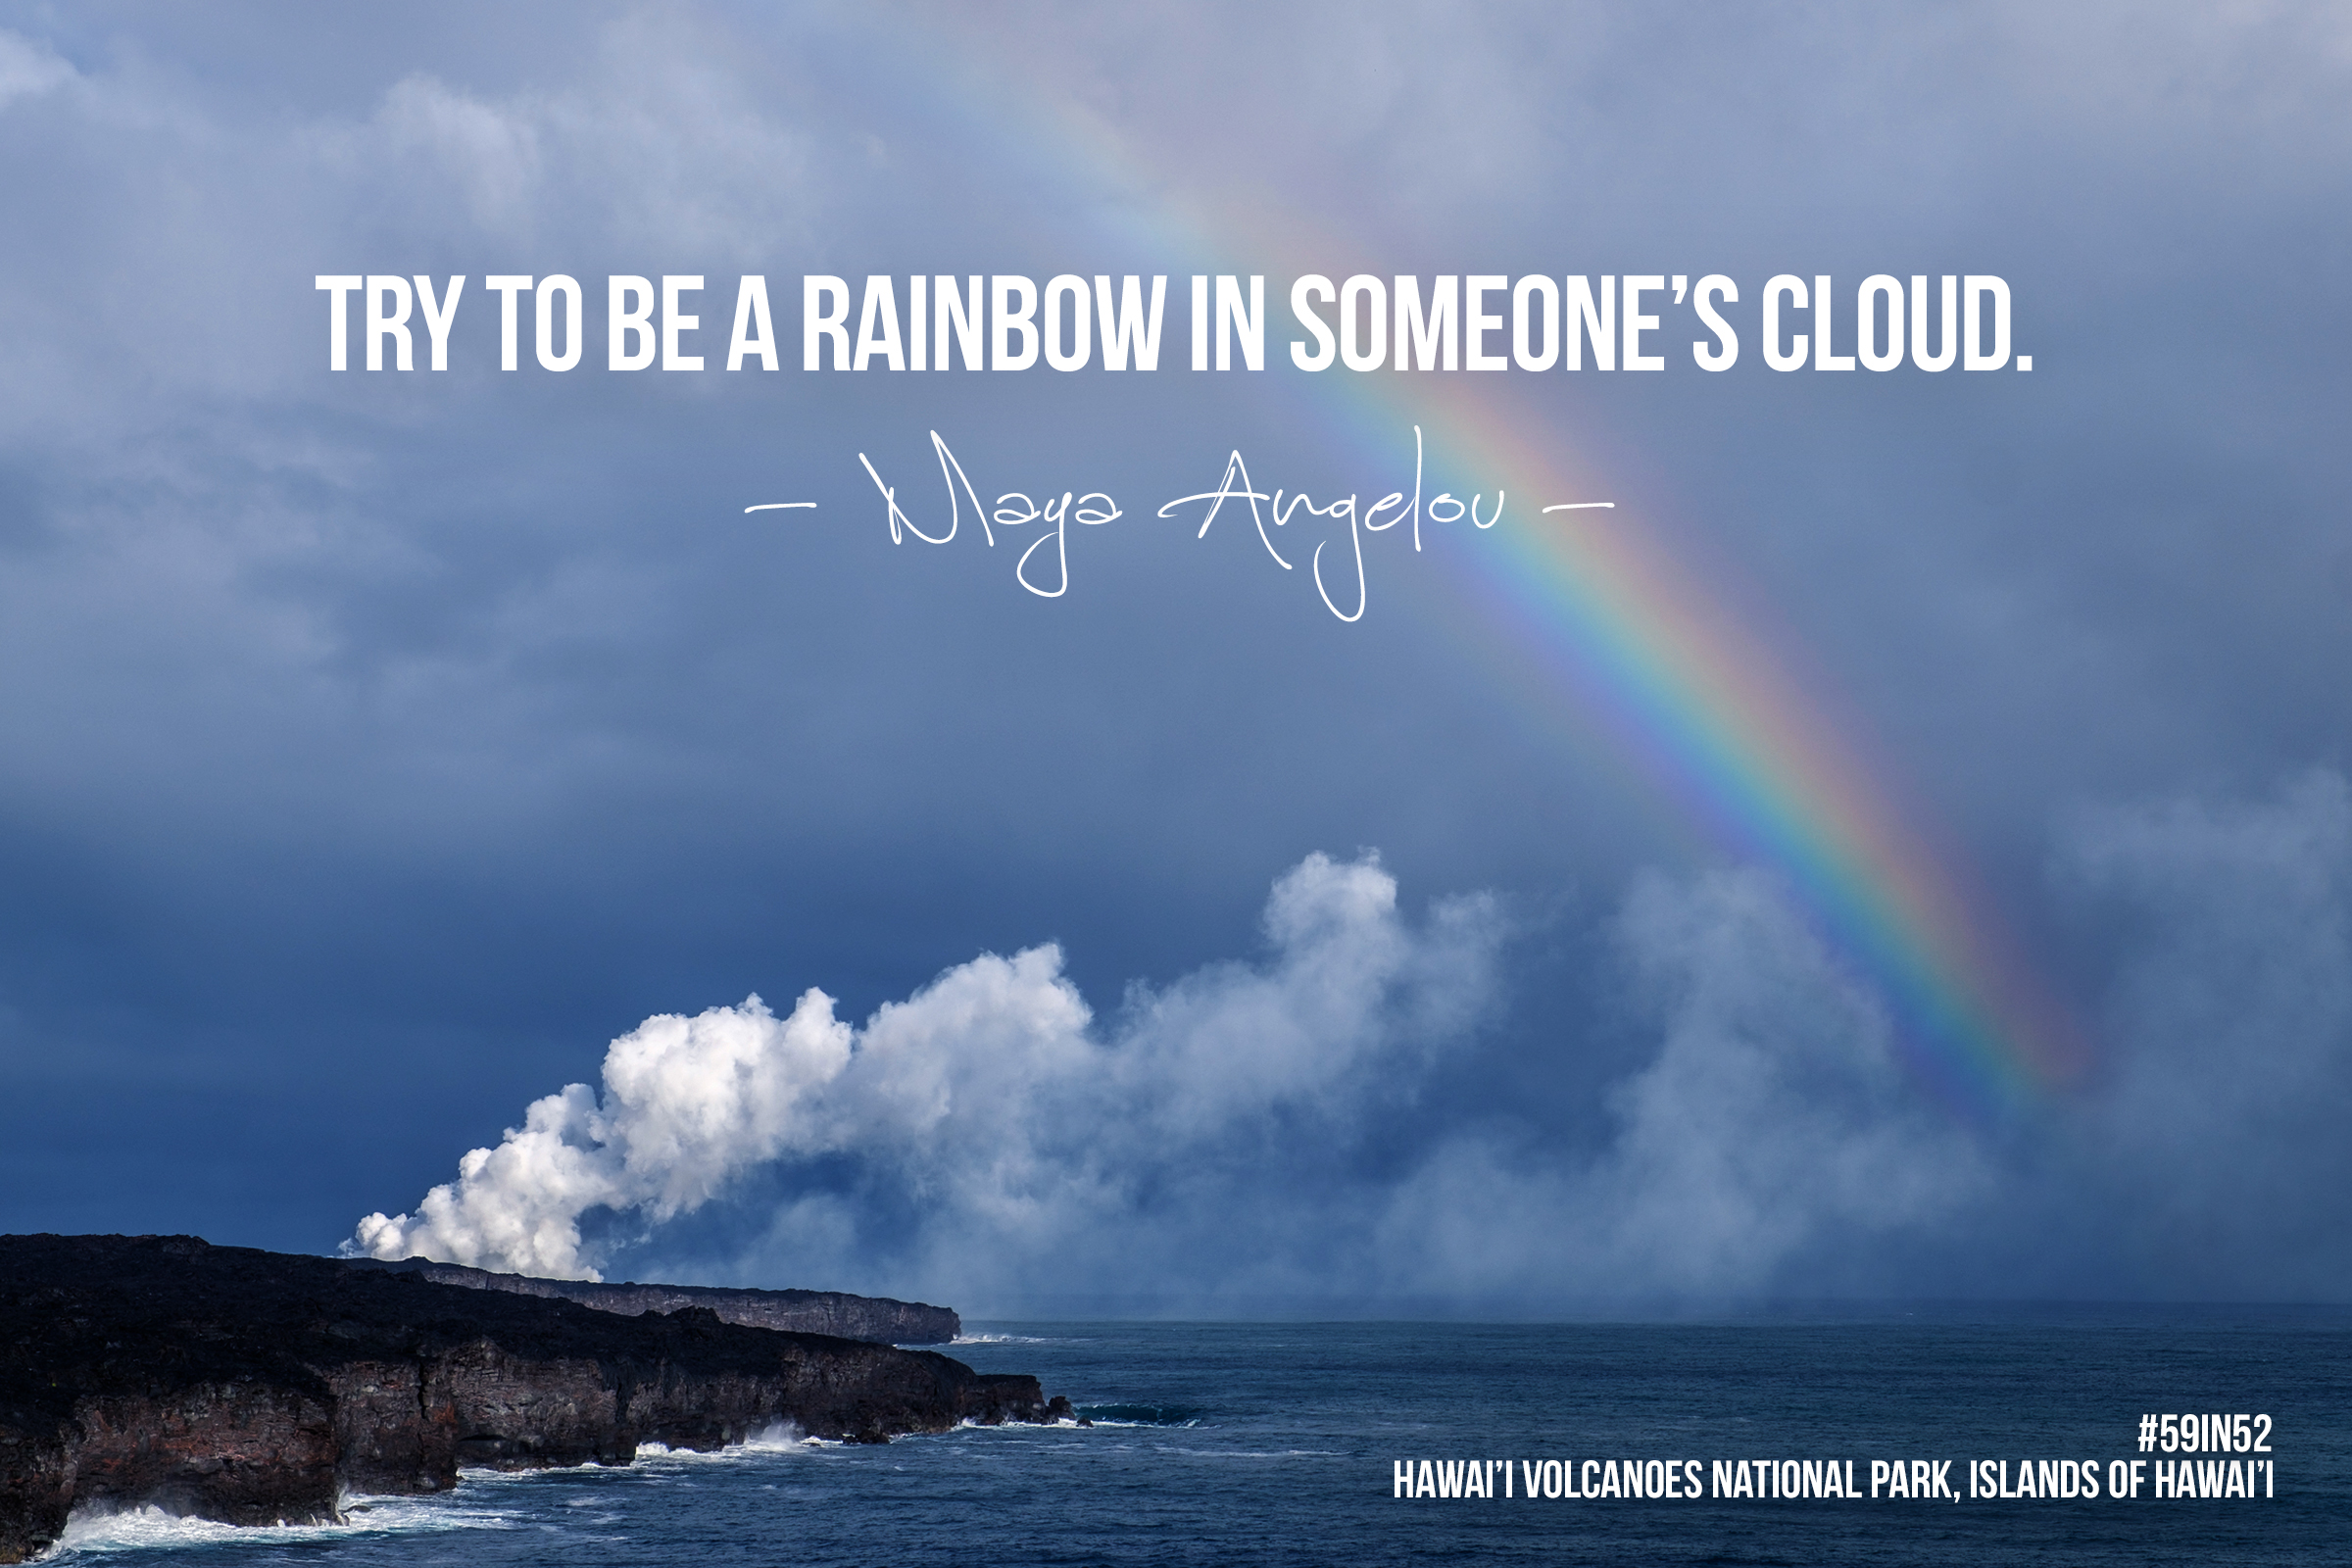 'Try to be a rainbow in someone's cloud.' - Maya Angelou